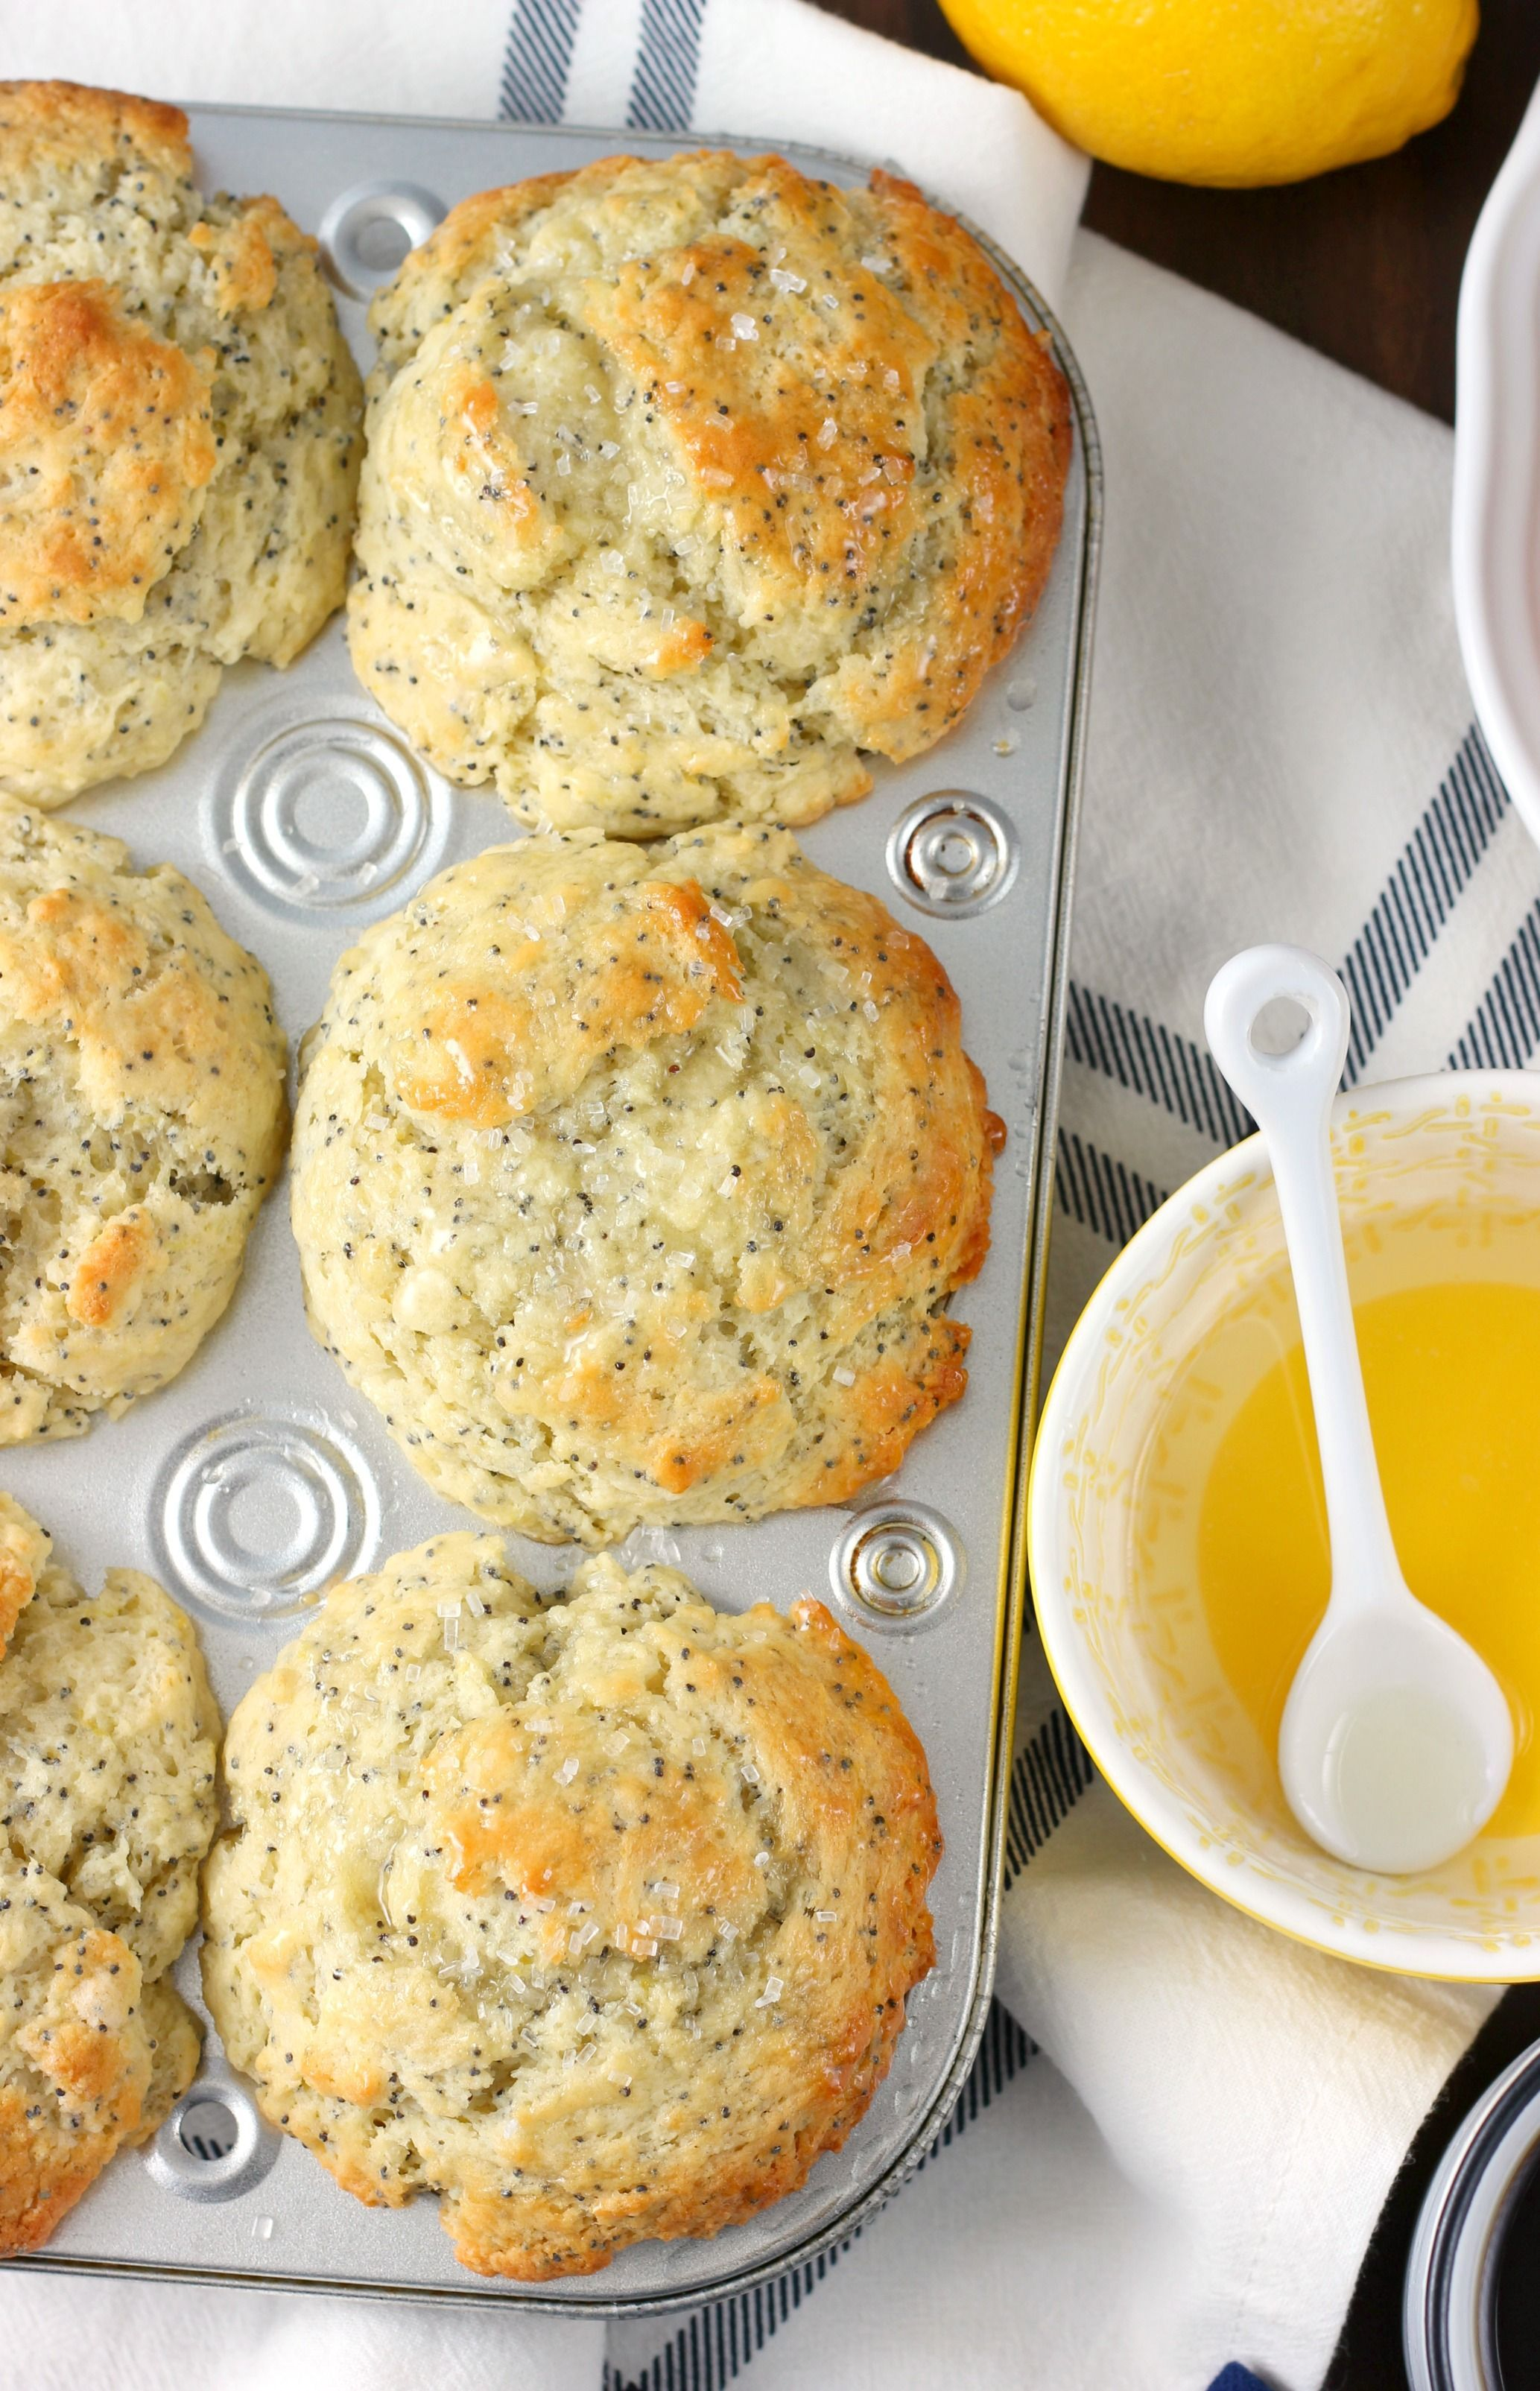 Bakery Style Lemon Poppy Seed Muffins are perfectly sweetened and tender with a tart lemon glaze and sprinkling of coarse sugar.